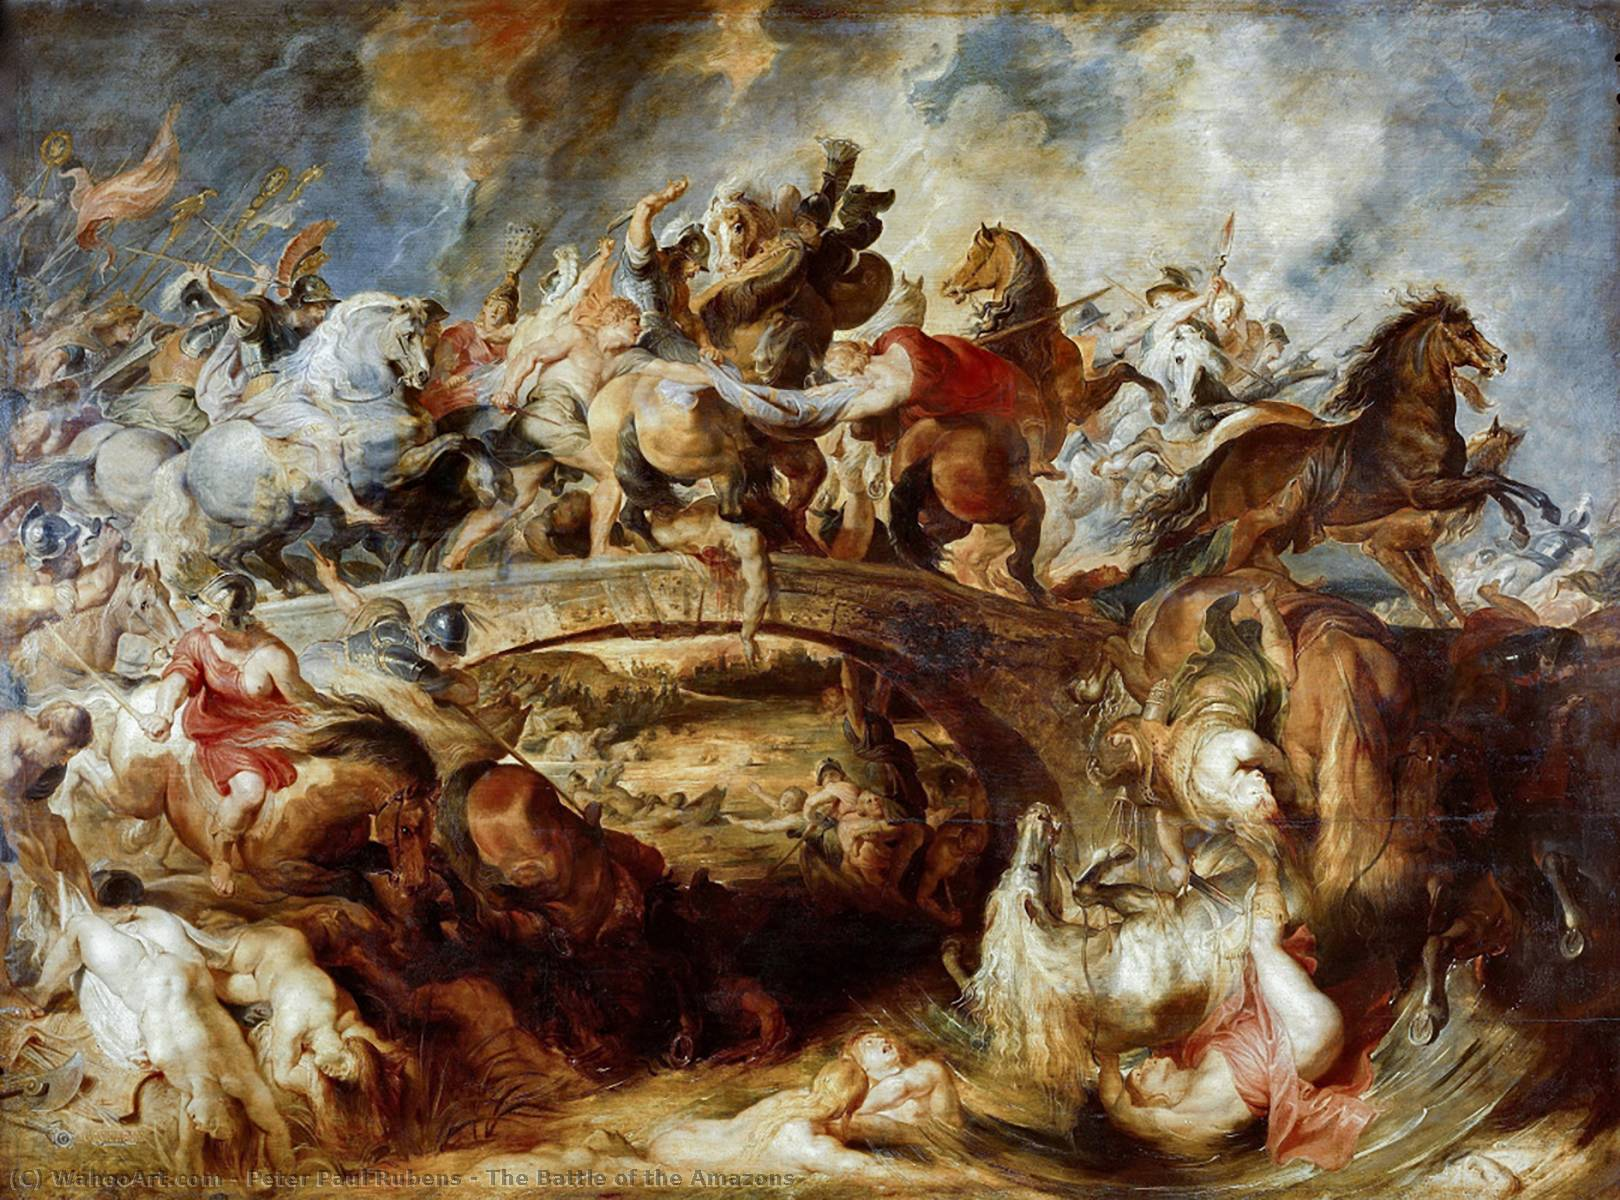 Order Oil Painting : The Battle of the Amazons by Peter Paul Rubens | AllPaintingsStore.com